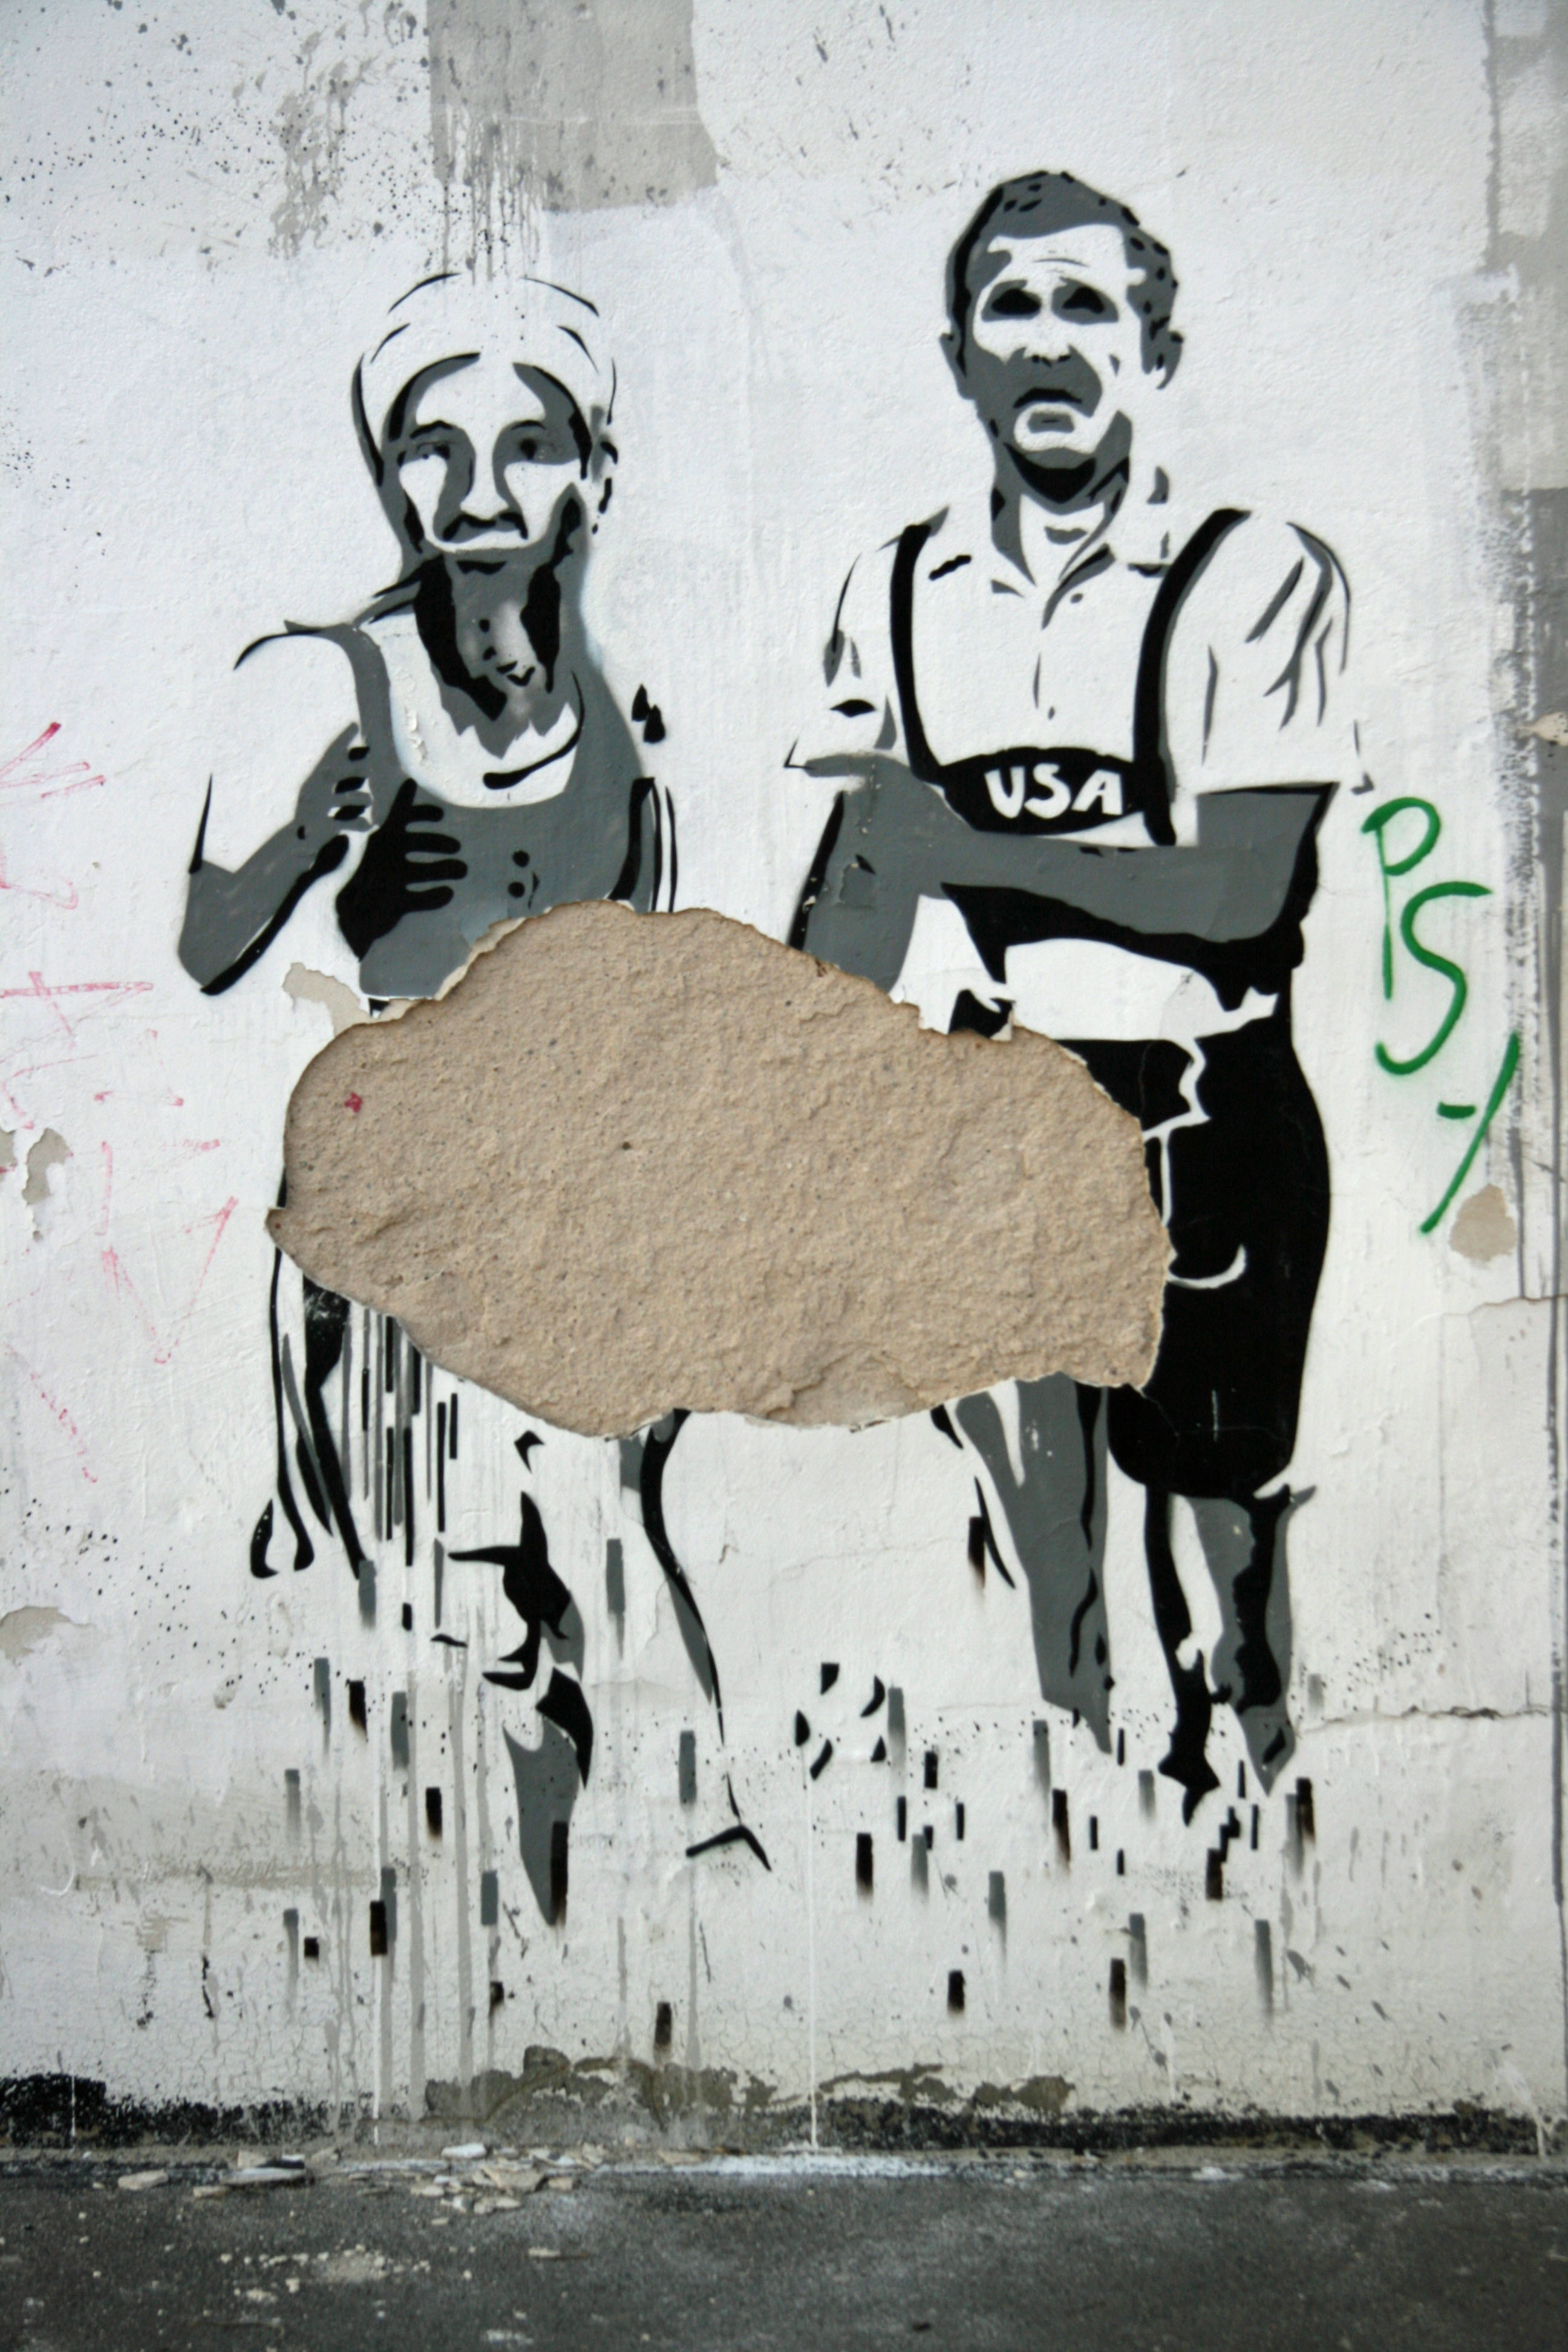 Bush Runner - Street Art by Unknown Artist in Berlin